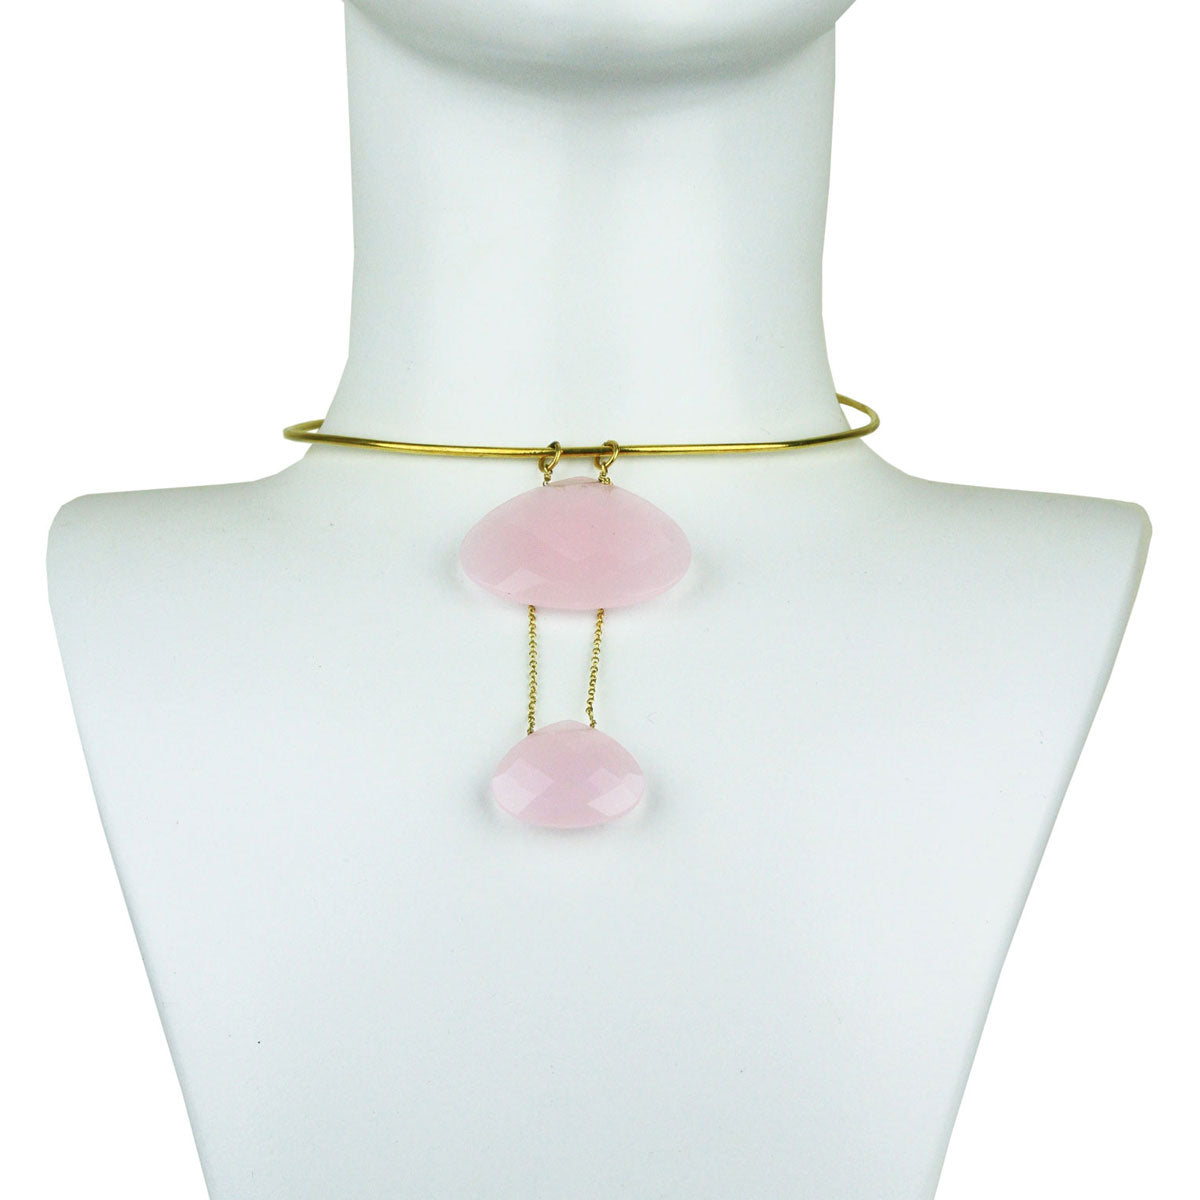 Selene Gold Plated 925 Sterling Silver Collar Necklace with Pink Quartz Drops